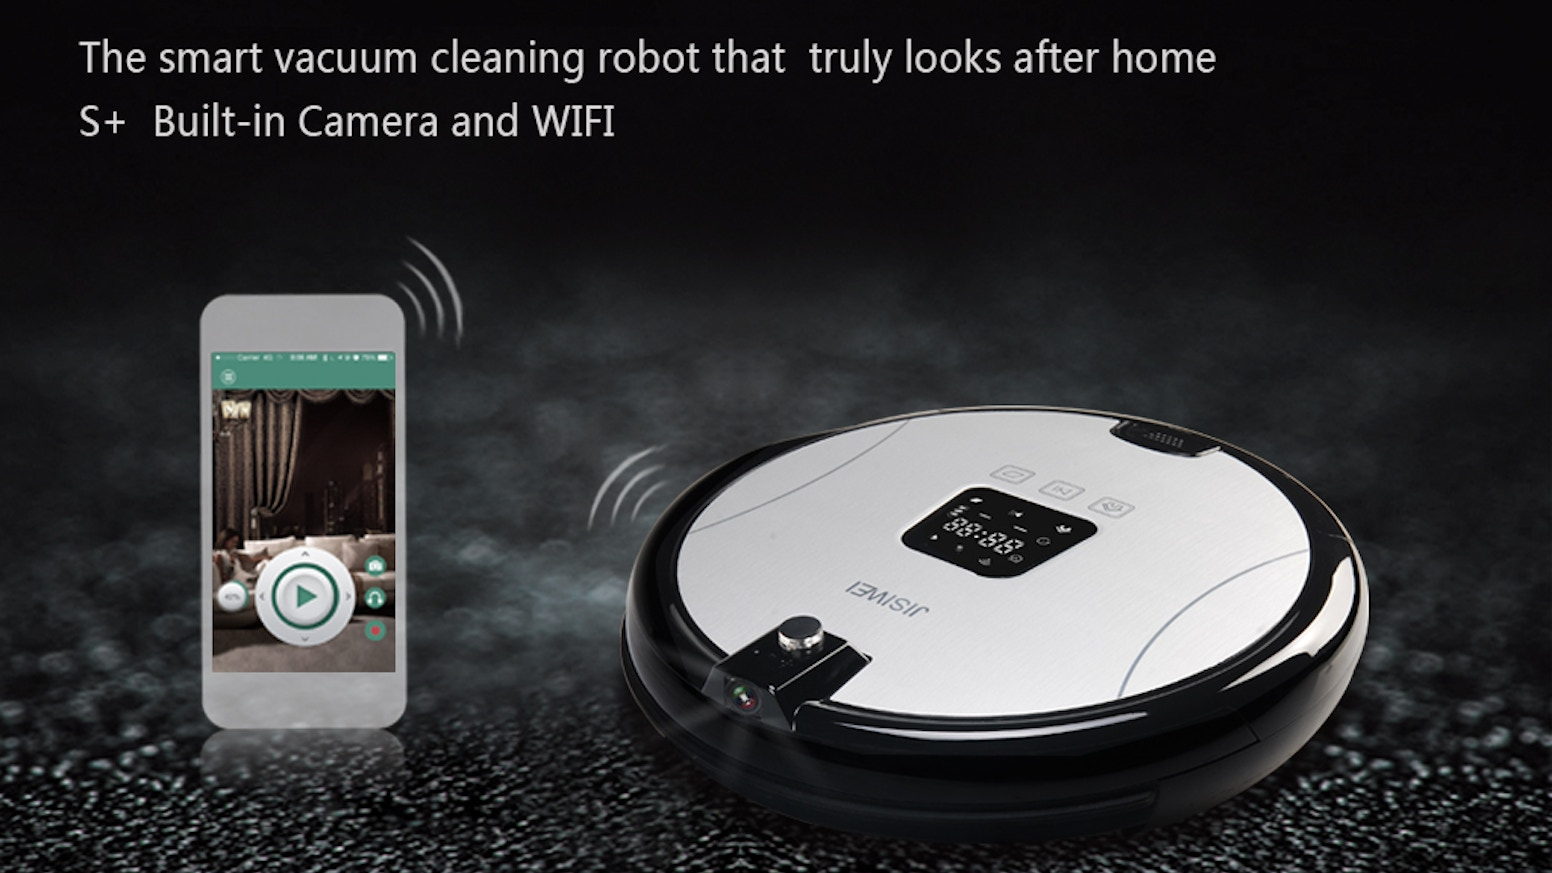 JISIWEI S+ is remote controlled, camera enabled, ideal for vacuuming and sweeping.It's a smart robot that truly looks after your home.